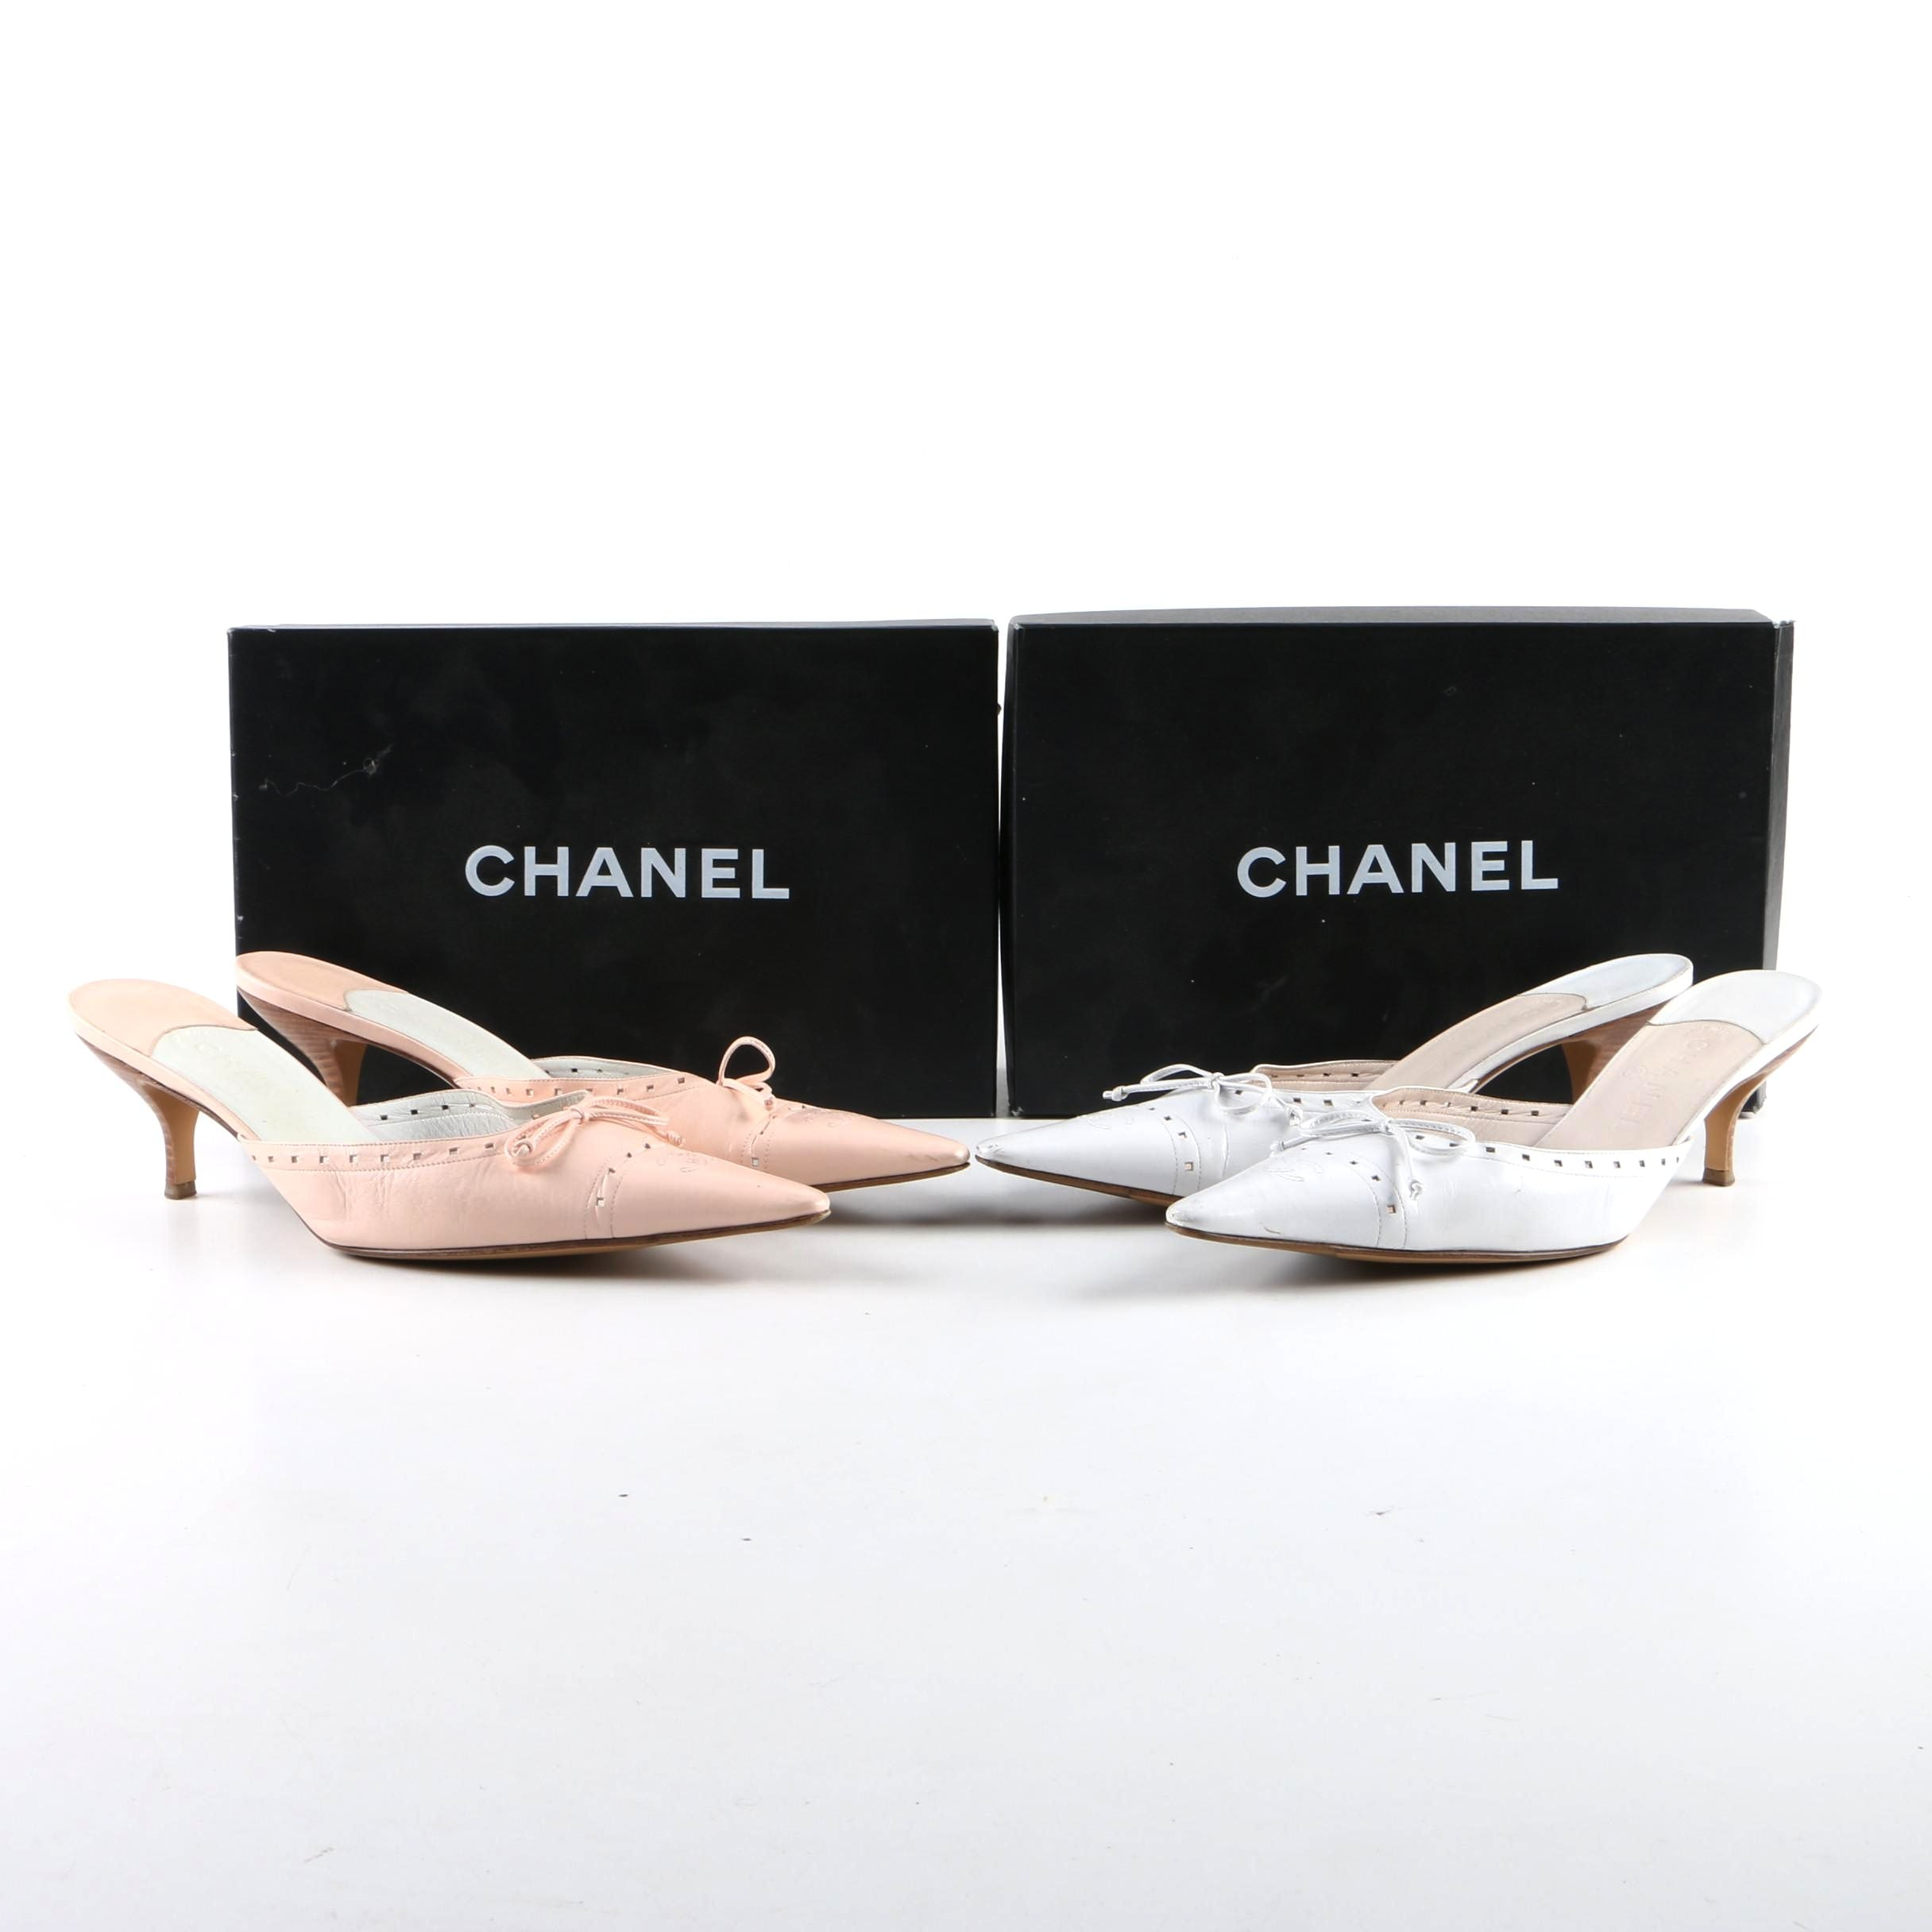 Chanel Leather Kitten Heel Mules in Blush and White Leather with Original Boxes